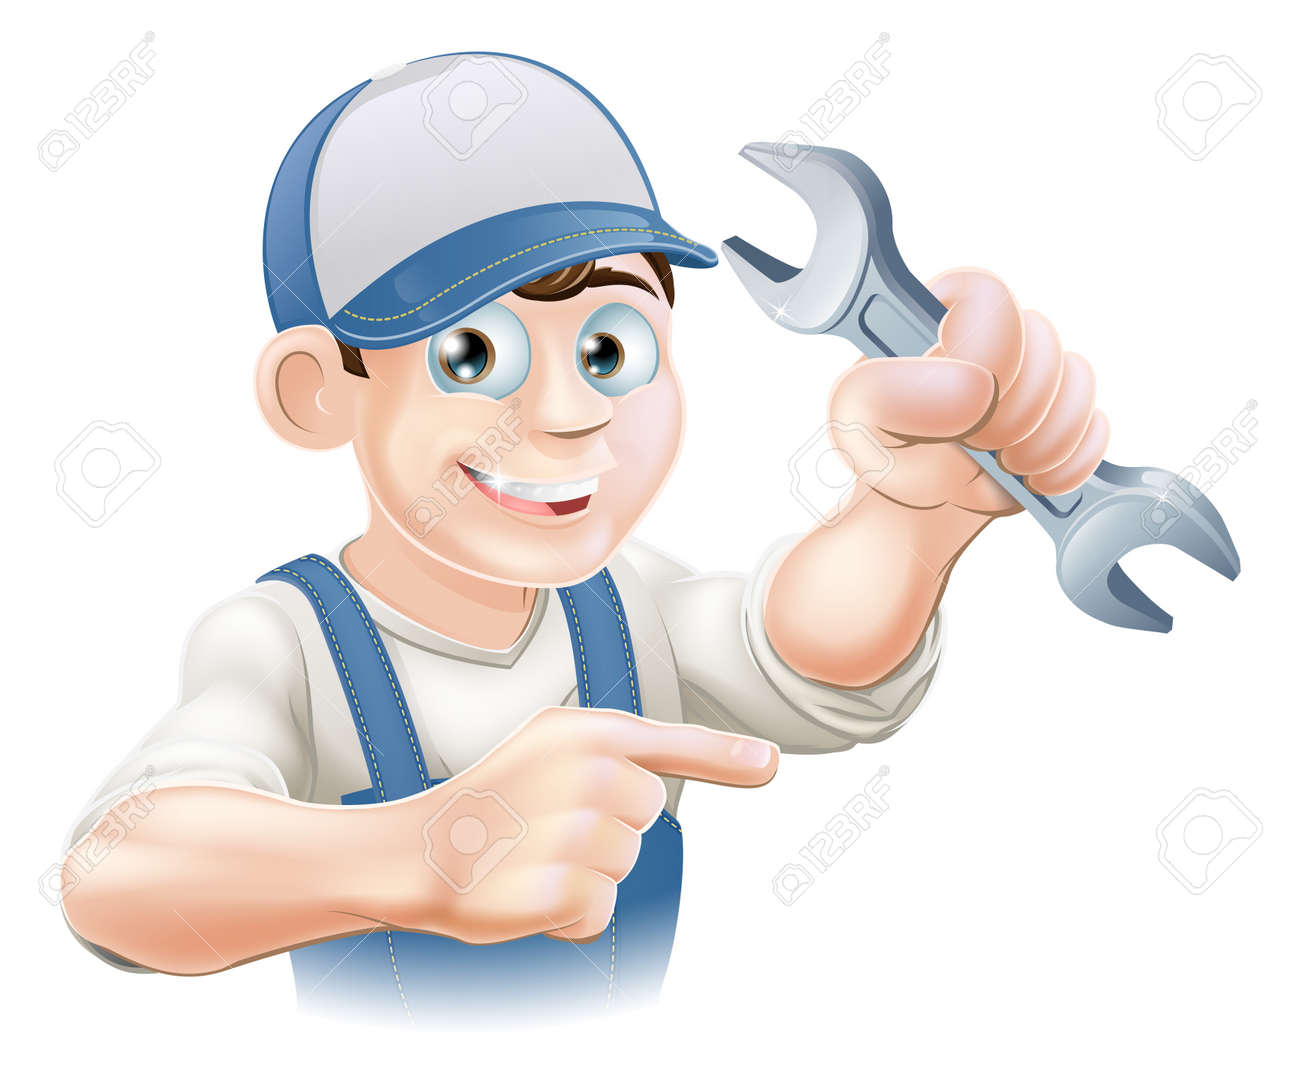 A plumber, mechanic or engineer in overalls pointing and holding a spanner or wrench Stock Vector - 19198124